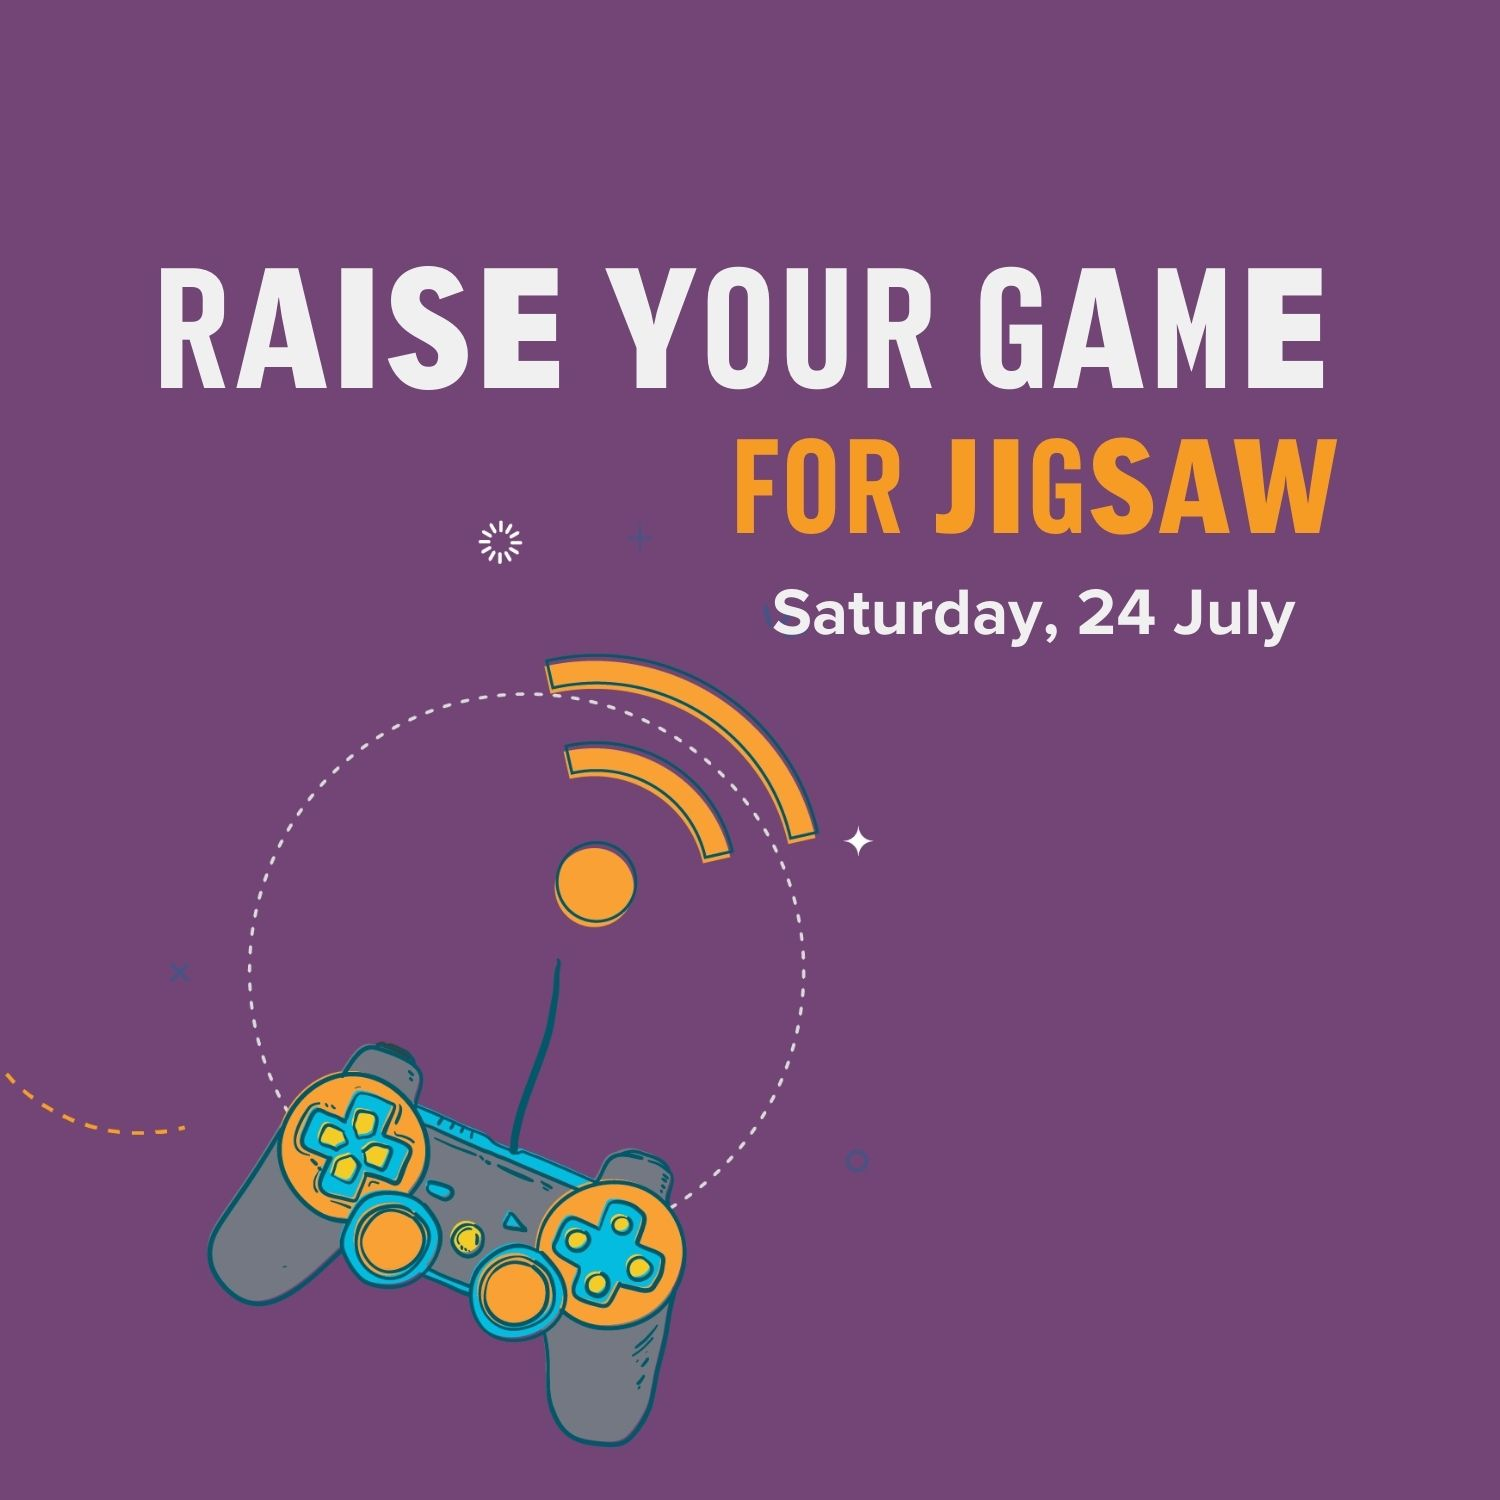 raise your game for jigsaw logo with game controller